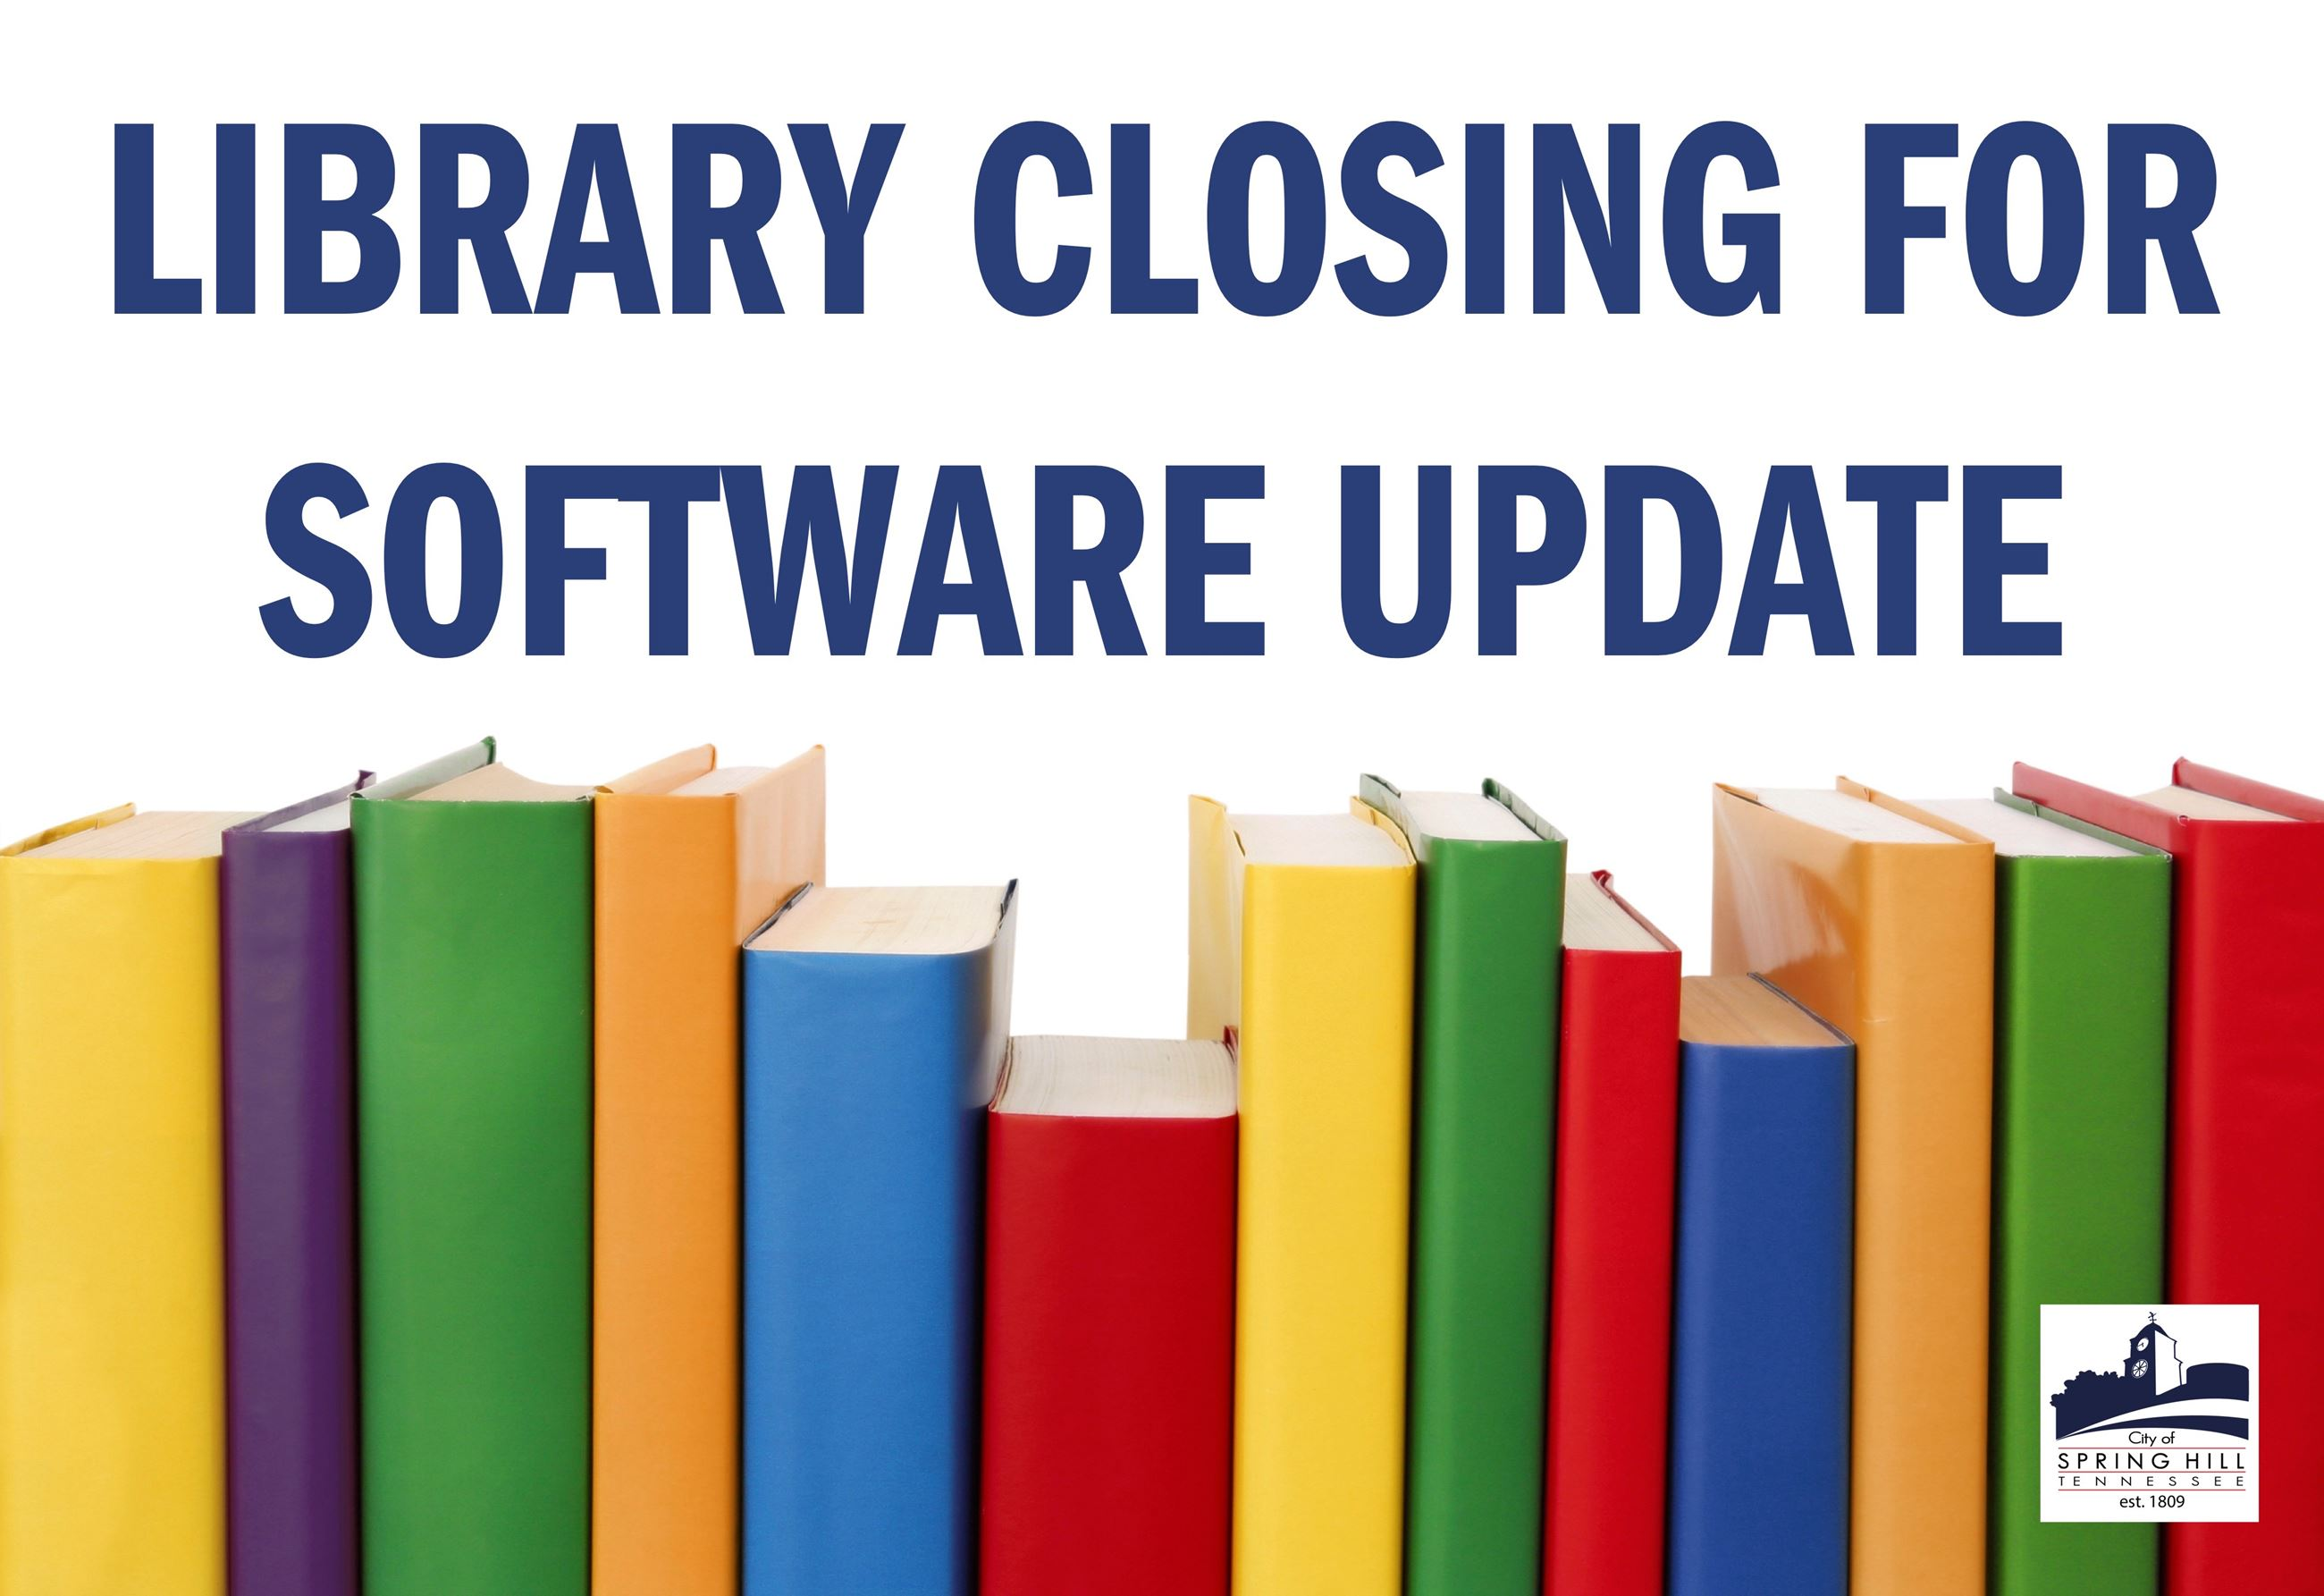 Library closing briefly in May for software update